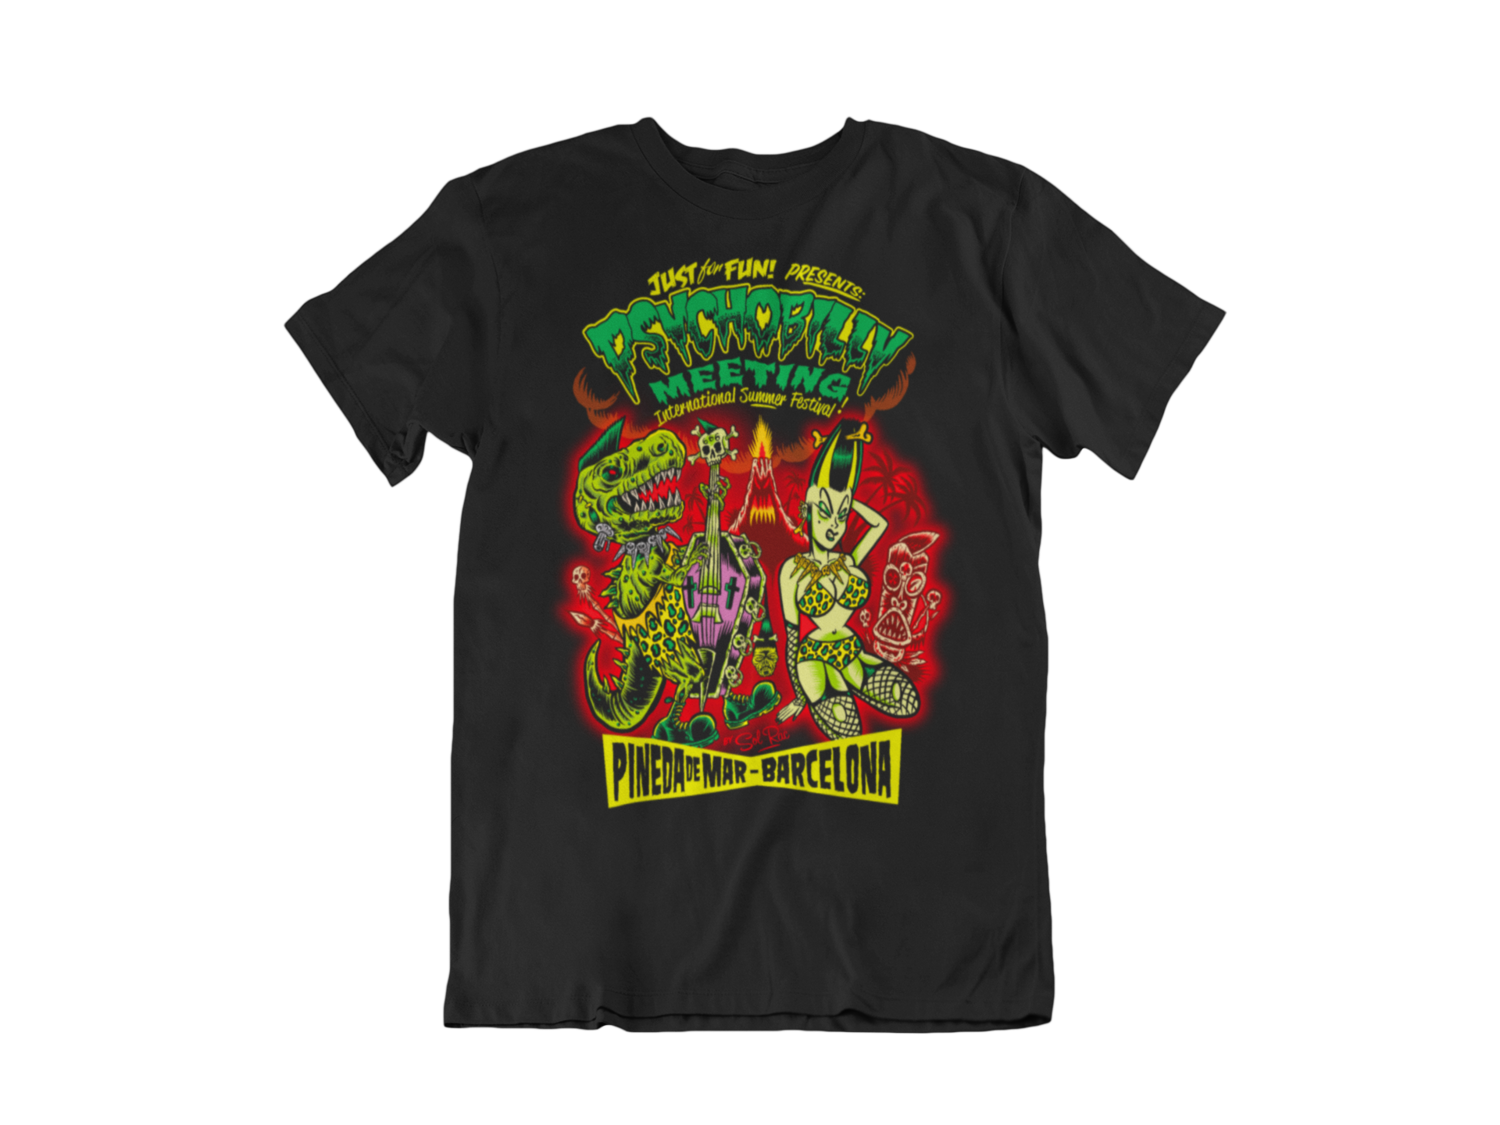 PSYCHOBILLY MEETING 2020 T-SHIRT MAN BY SOLRAC